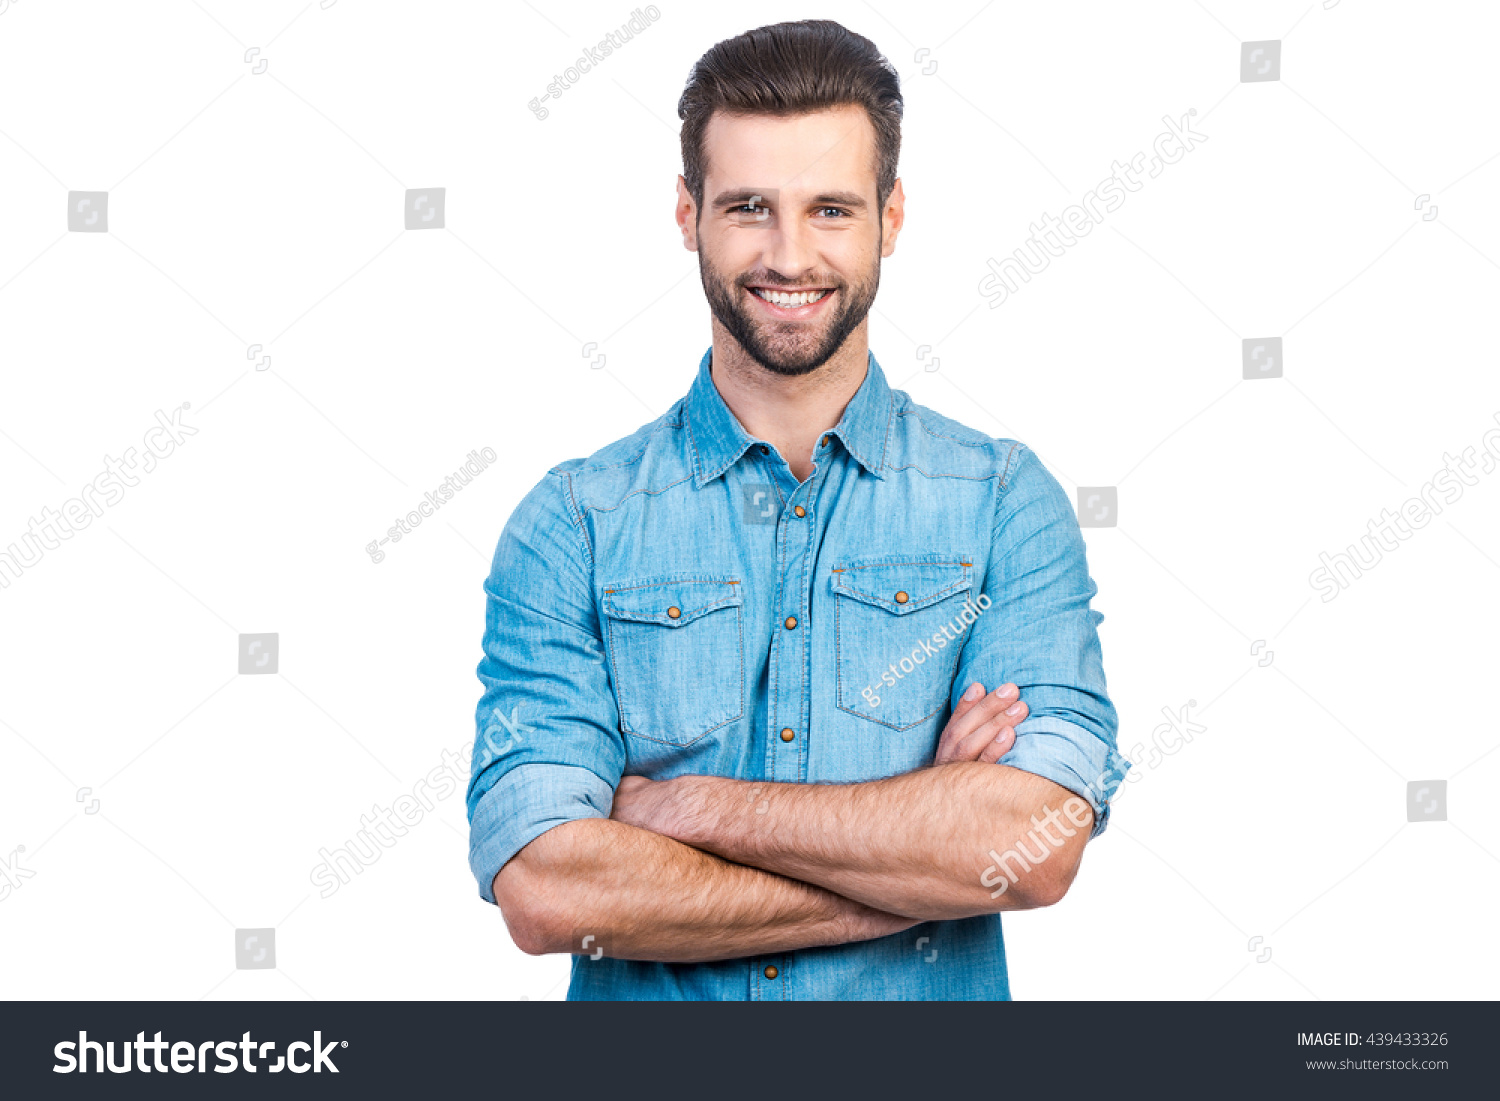 Casually handsome. Confident young handsome man in jeans shirt keeping arms crossed and smiling while standing against white background  #439433326